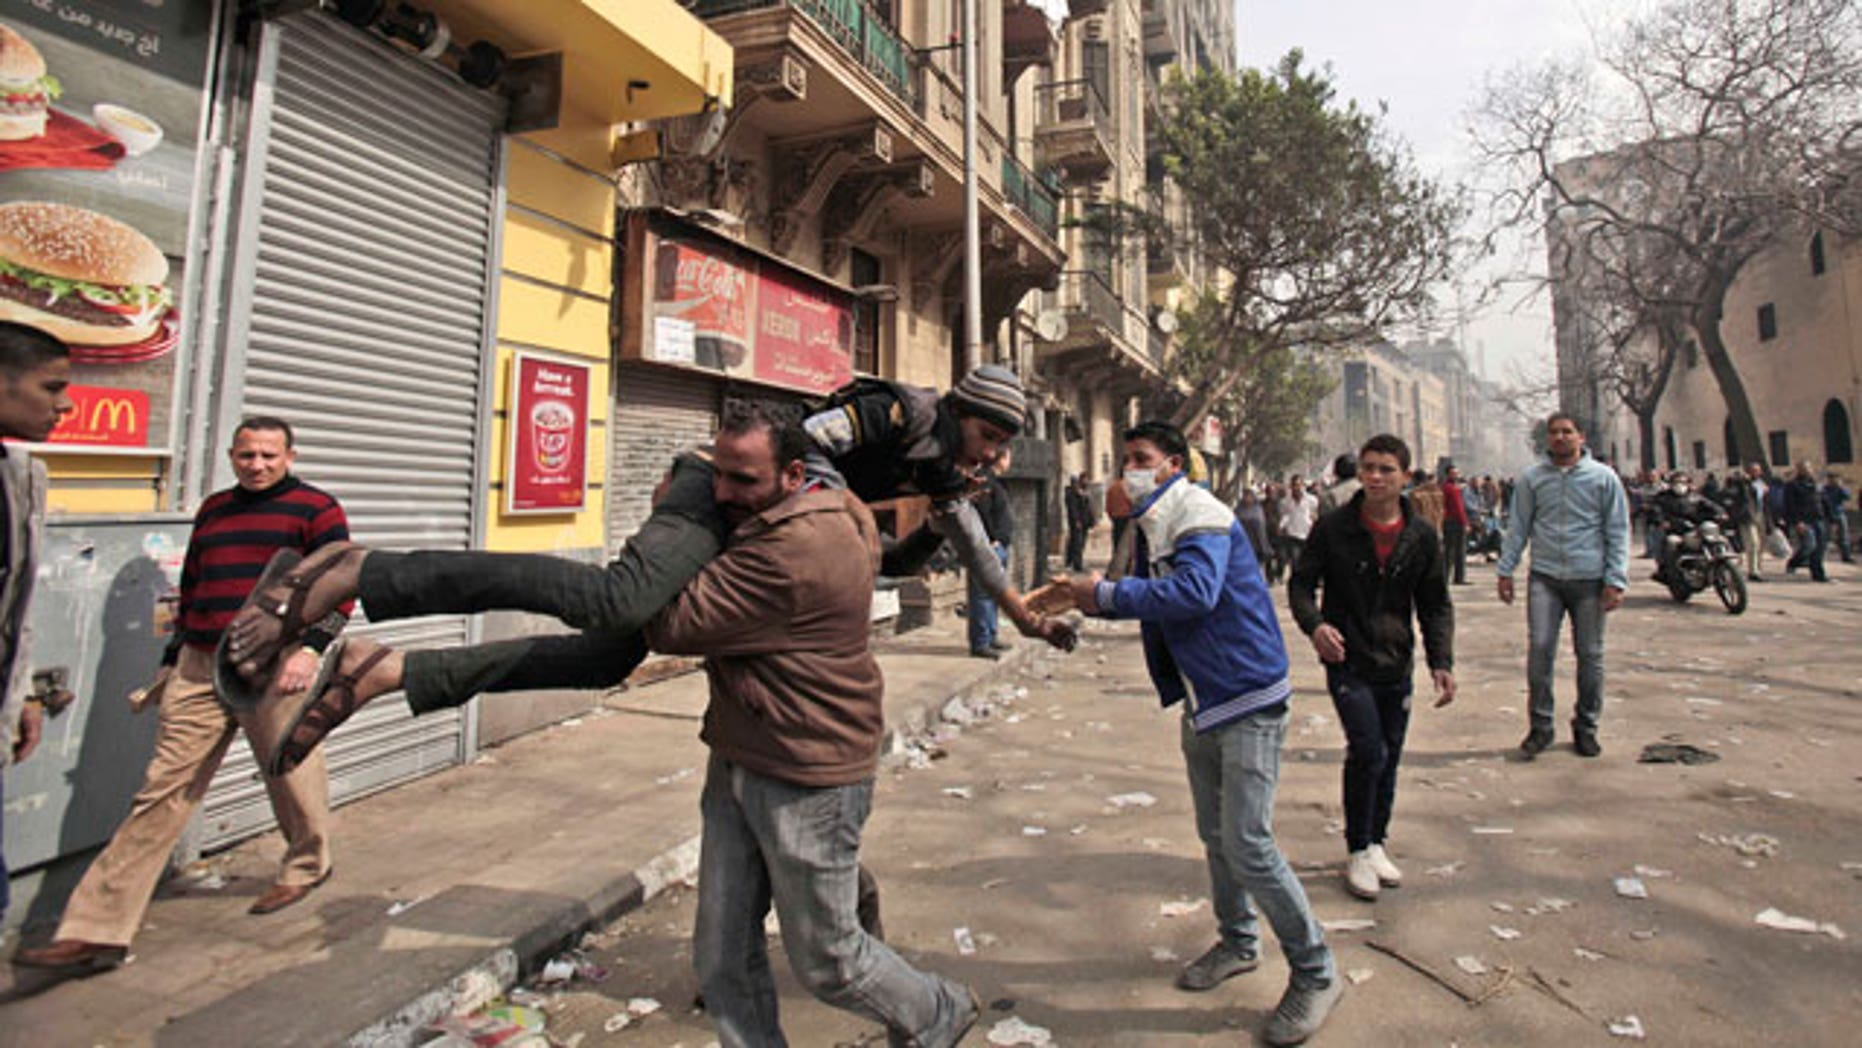 Feb. 6, 2012: An Egyptian protestor injured in clashes with security forces is carried to a field hospital during clashes near the Interior Ministry in Cairo, Egypt.